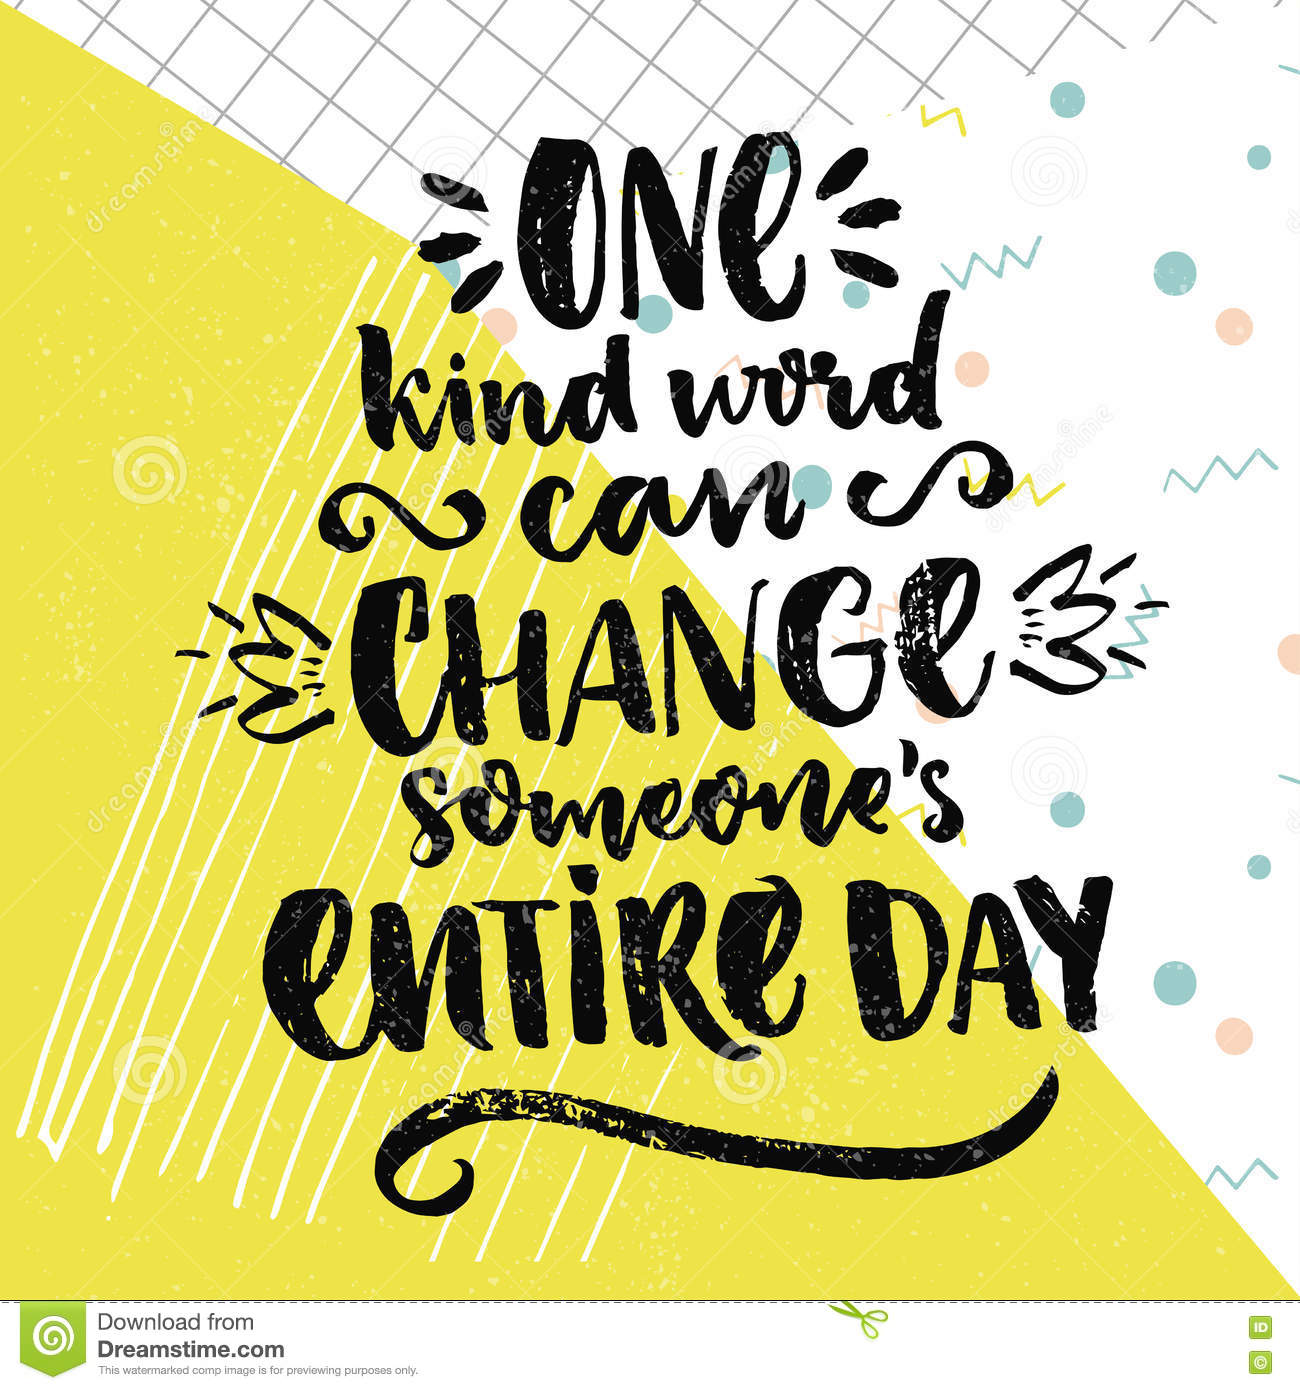 One kind word can change someones entire day inspirational saying download one kind word can change someones entire day inspirational saying about love and kindness thecheapjerseys Gallery